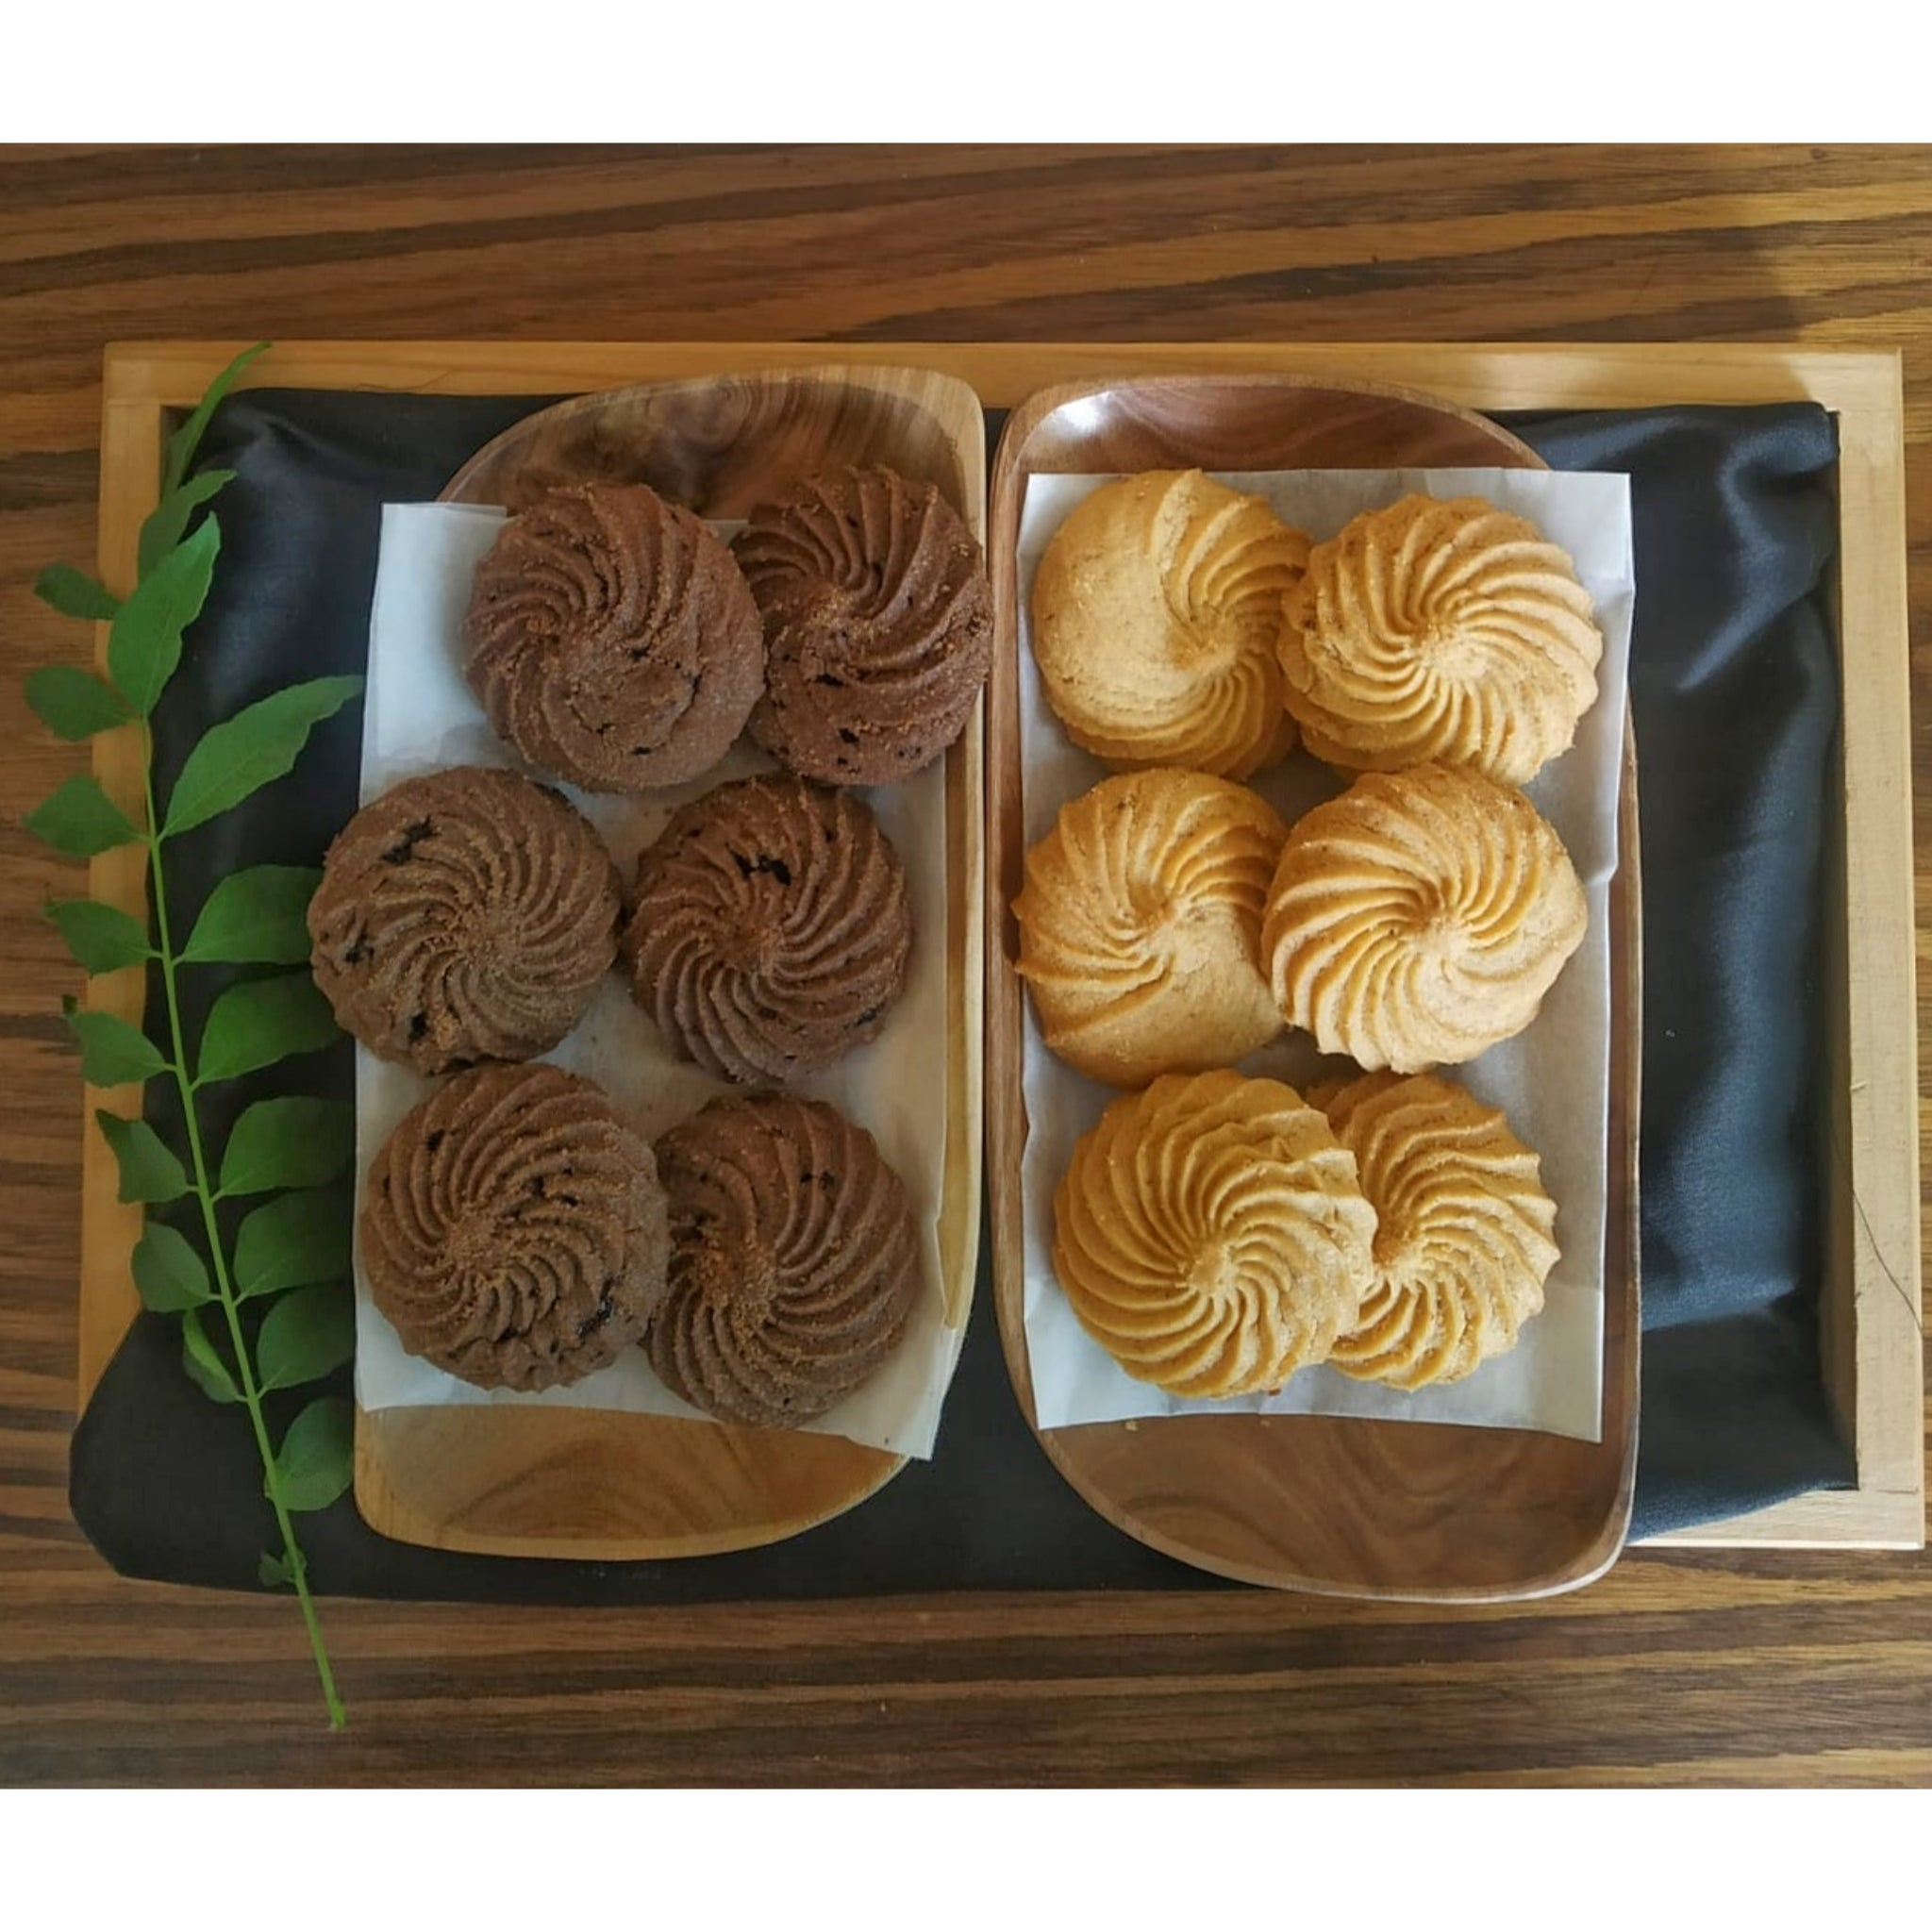 Platters Gifting Set